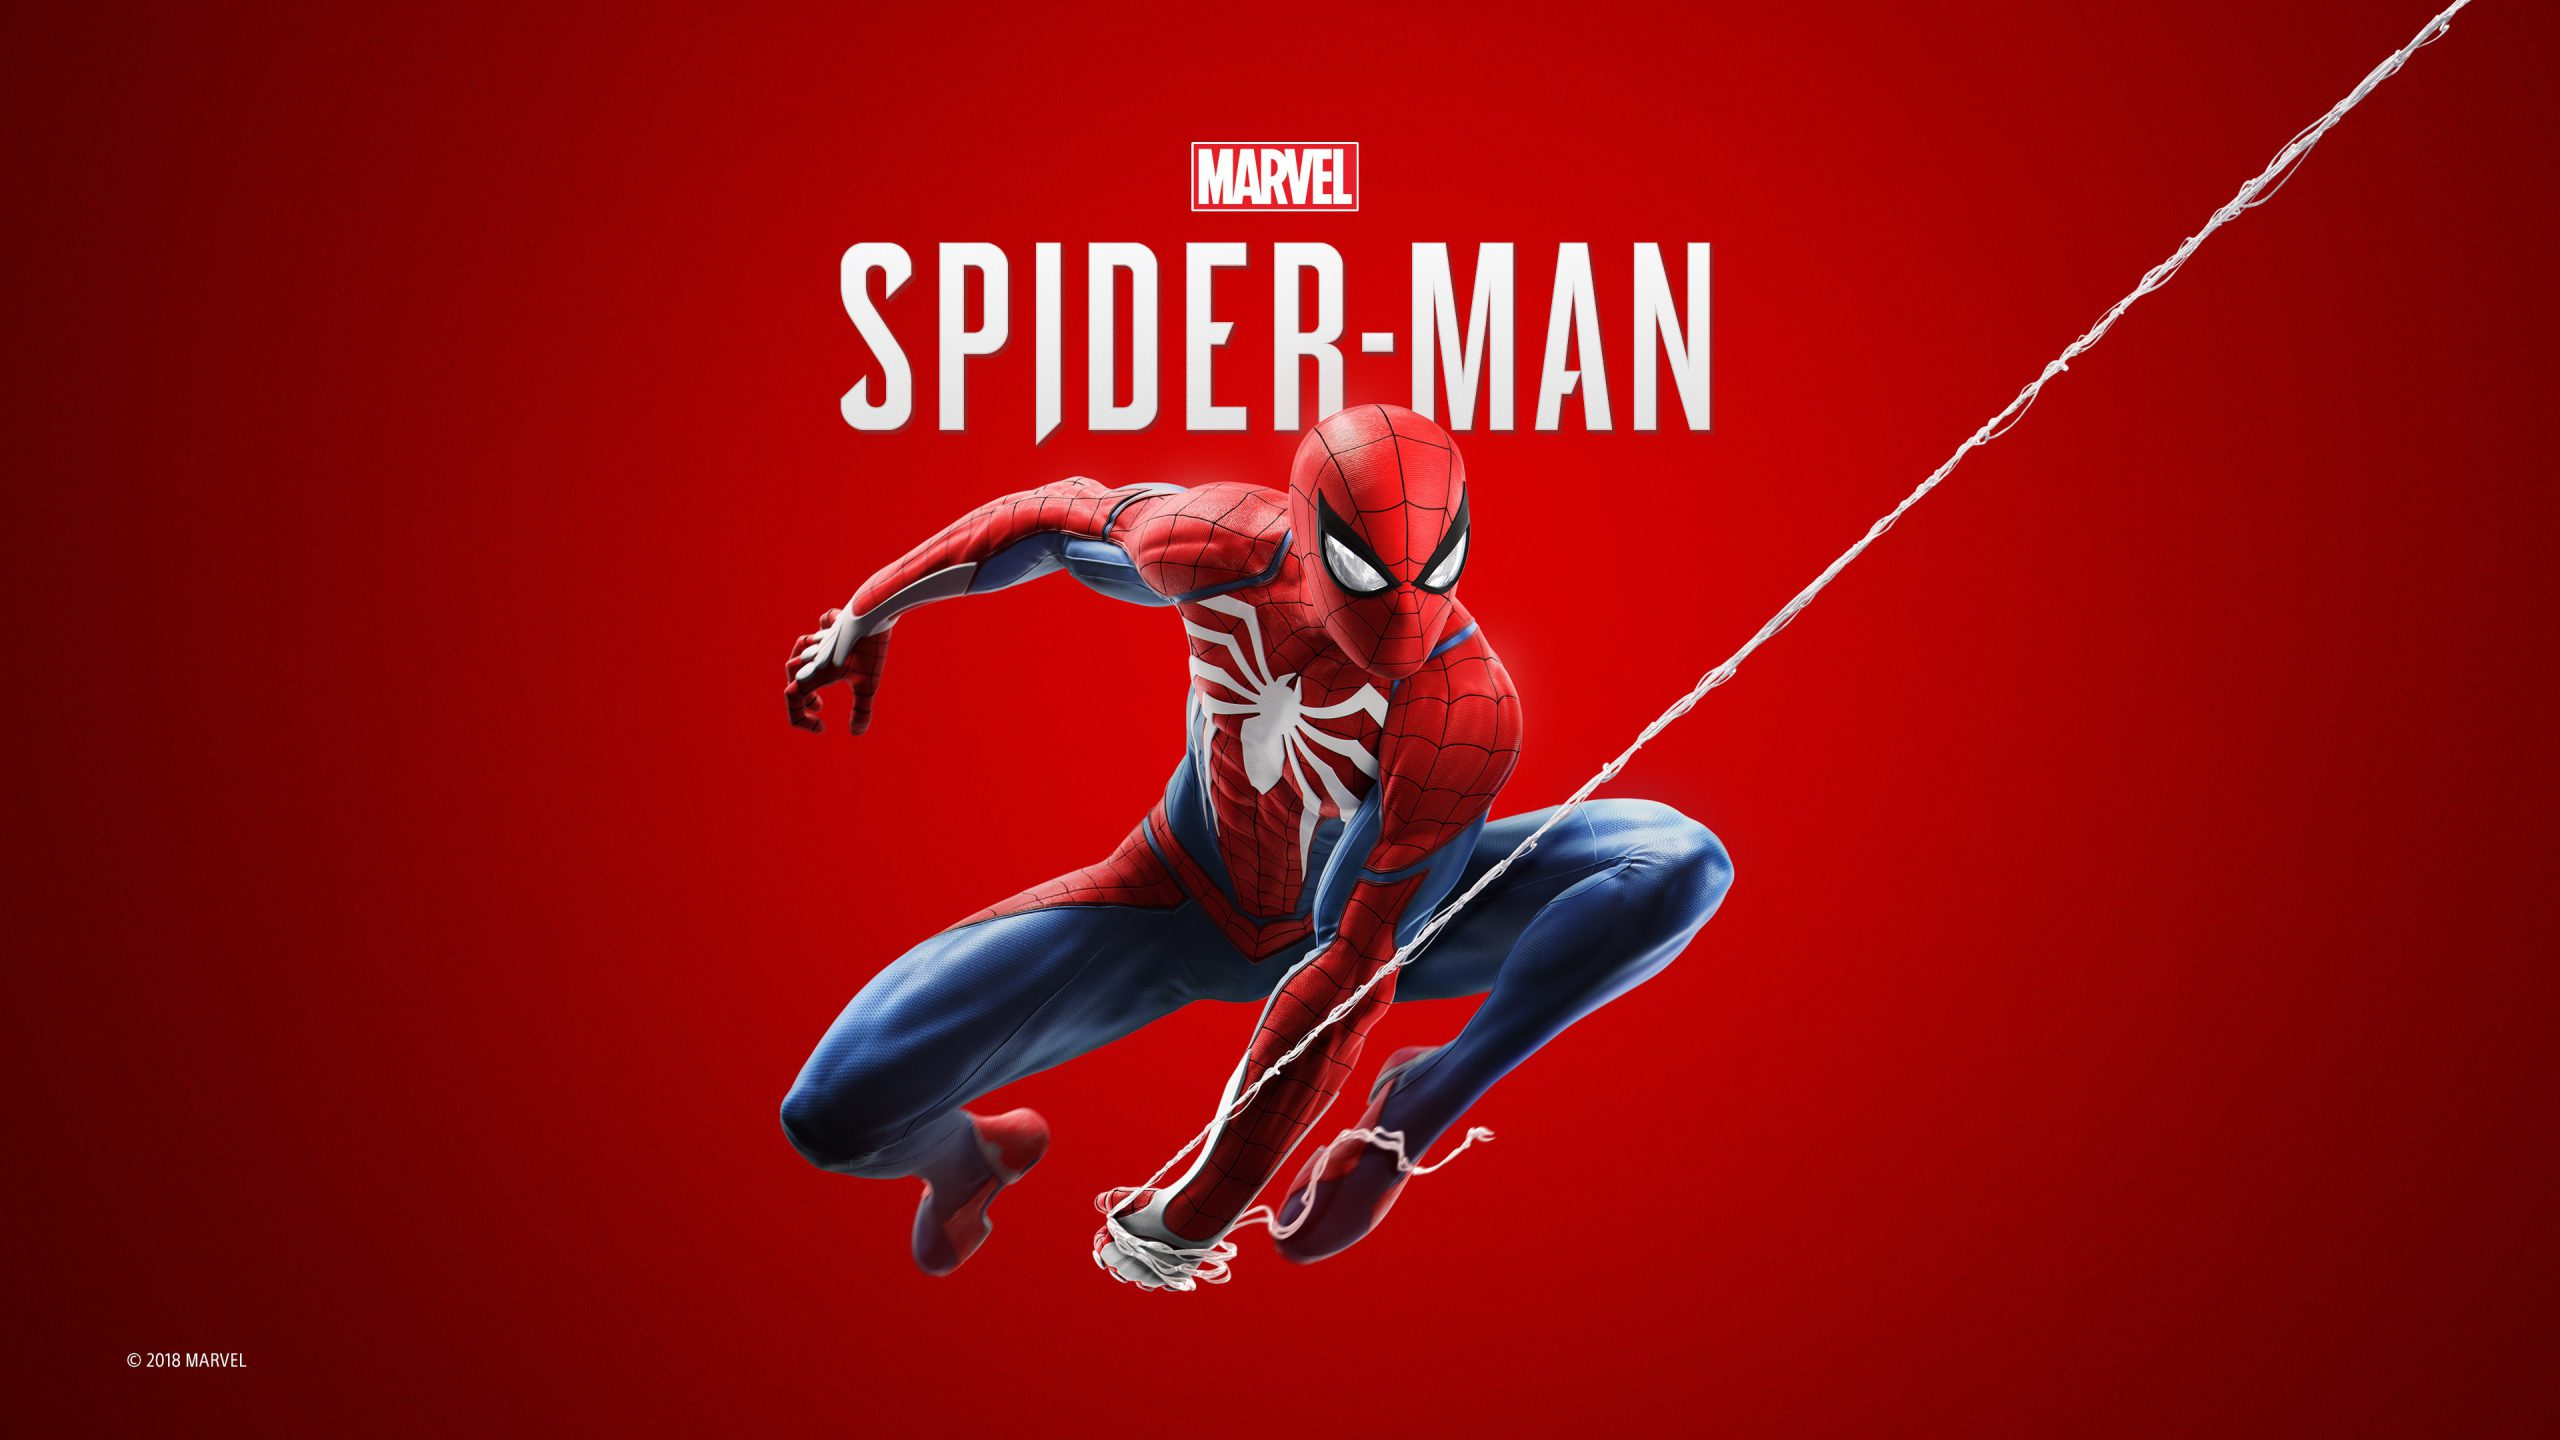 Spider Man Marvel Wallpaper Kolpaper Awesome Free Hd Wallpapers